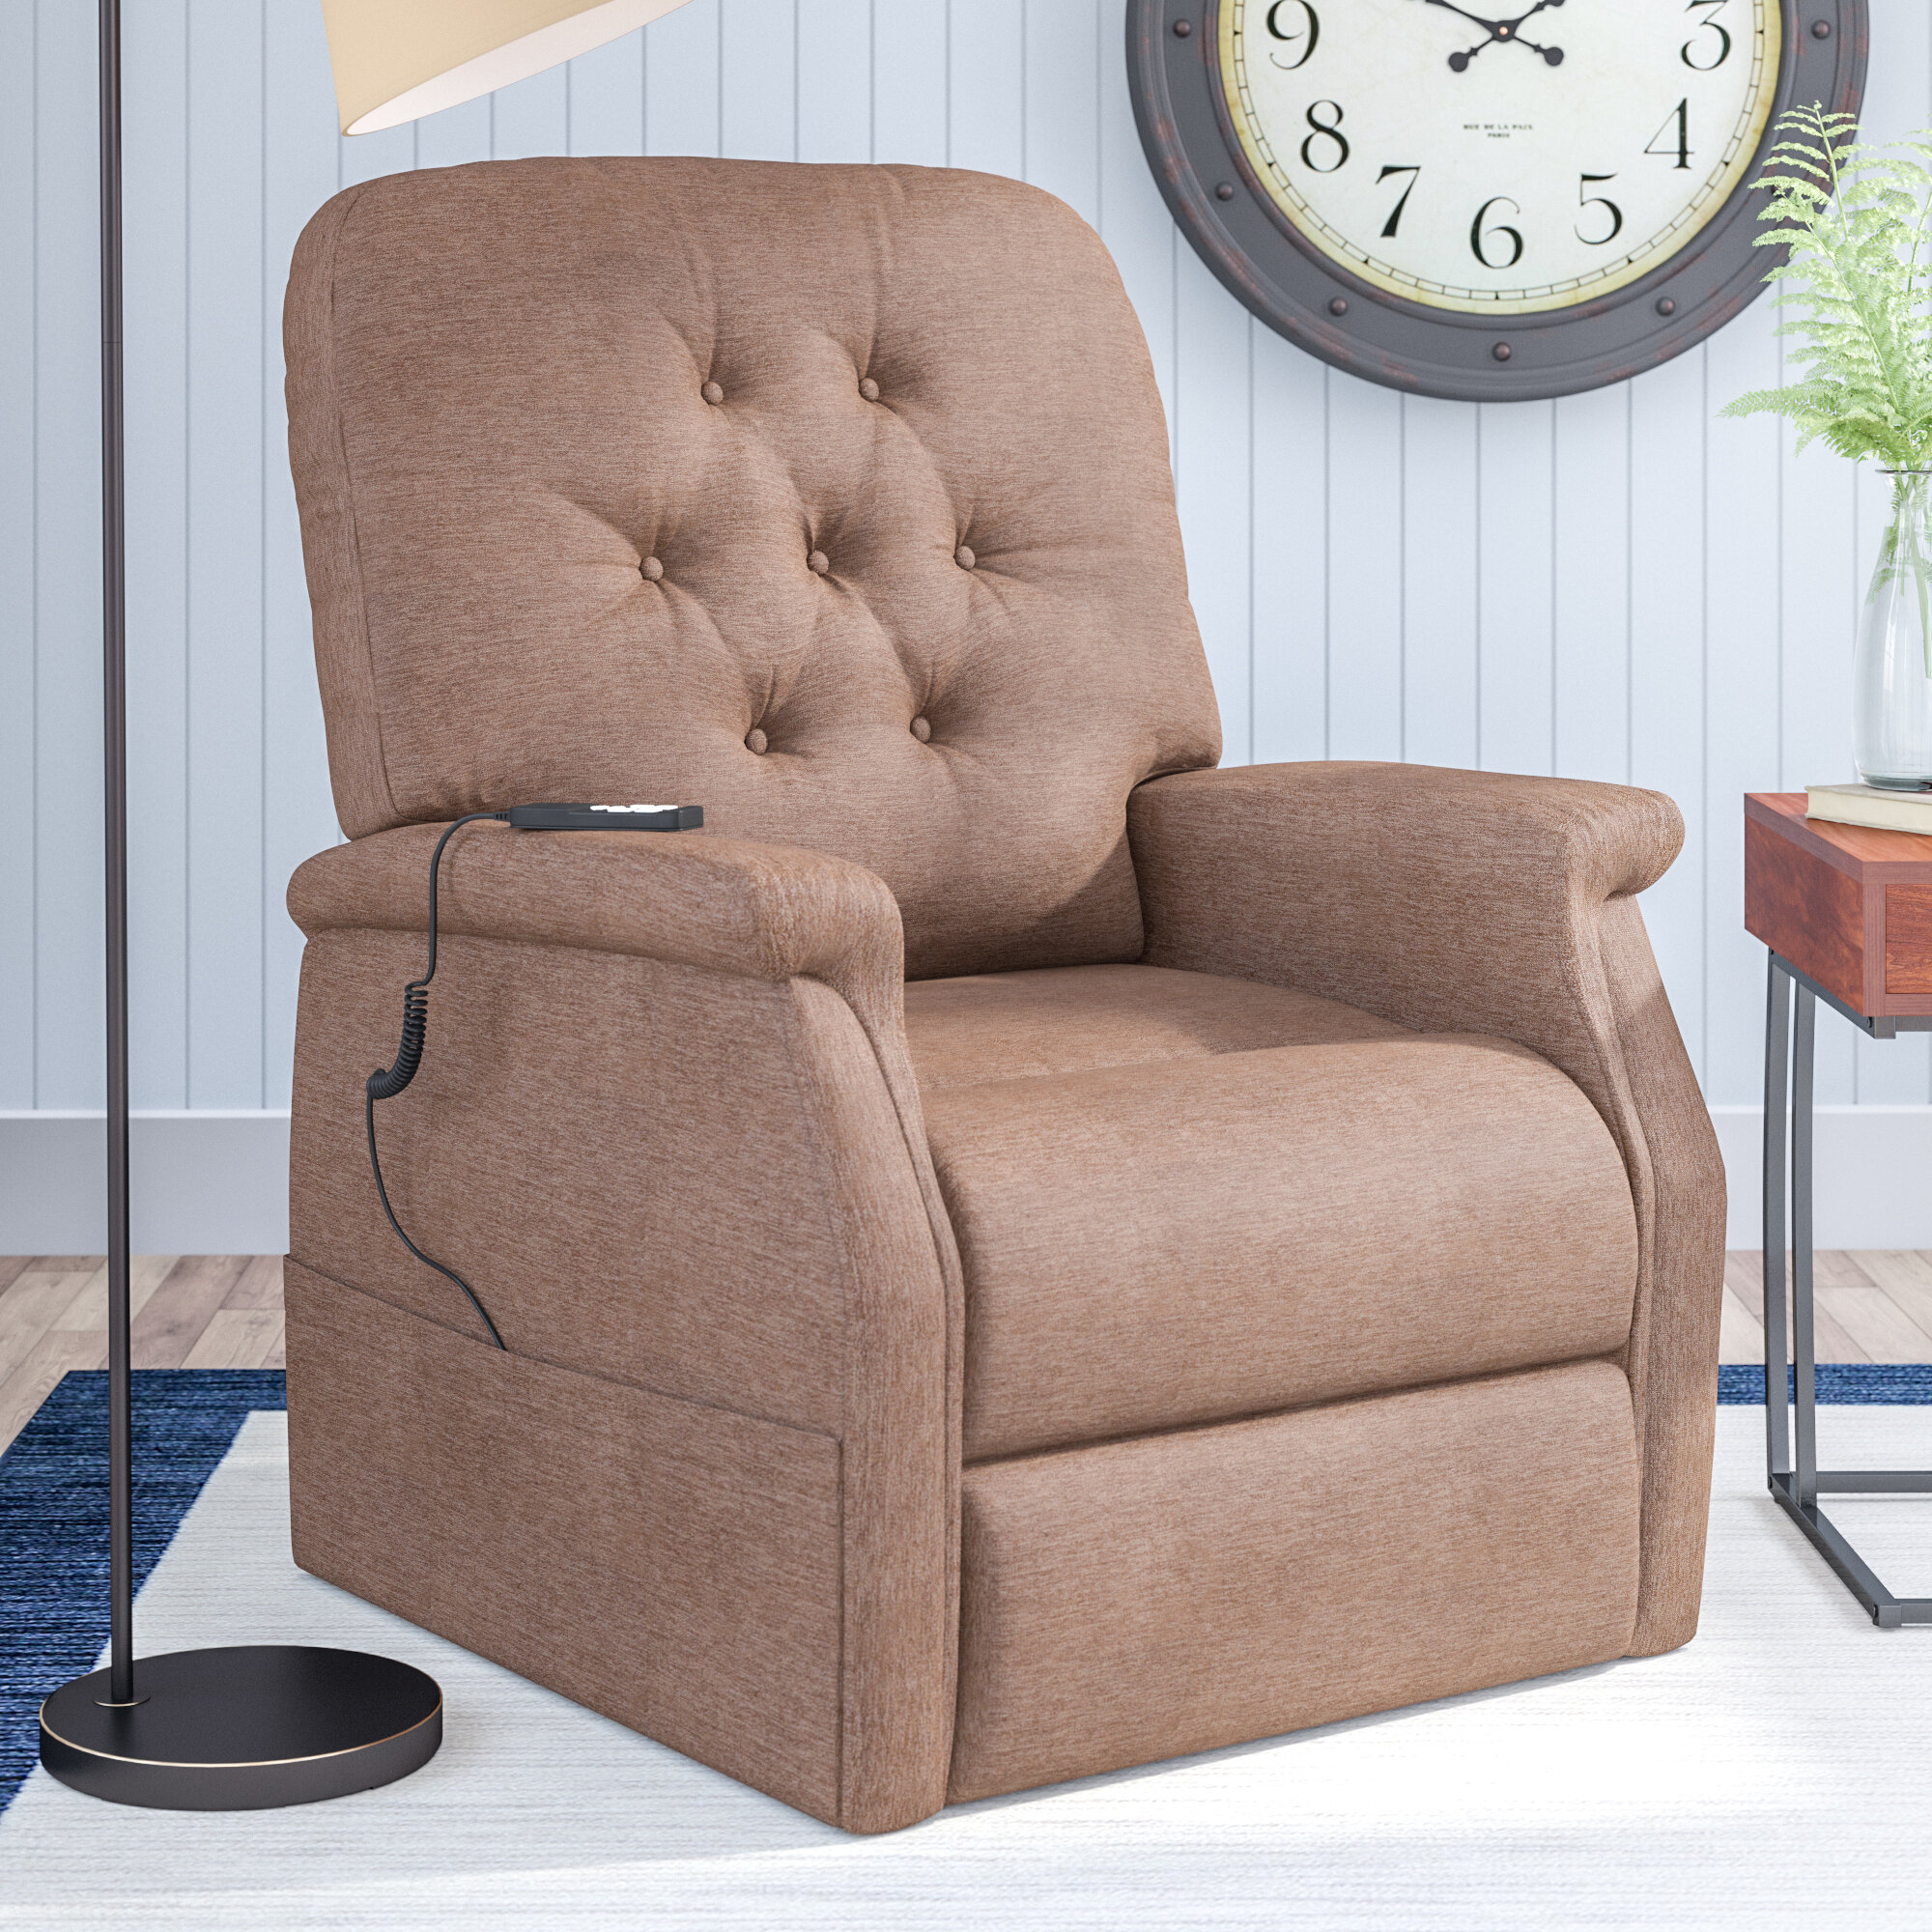 Phenomenal Winfield Power Lift Assist Recliner Squirreltailoven Fun Painted Chair Ideas Images Squirreltailovenorg